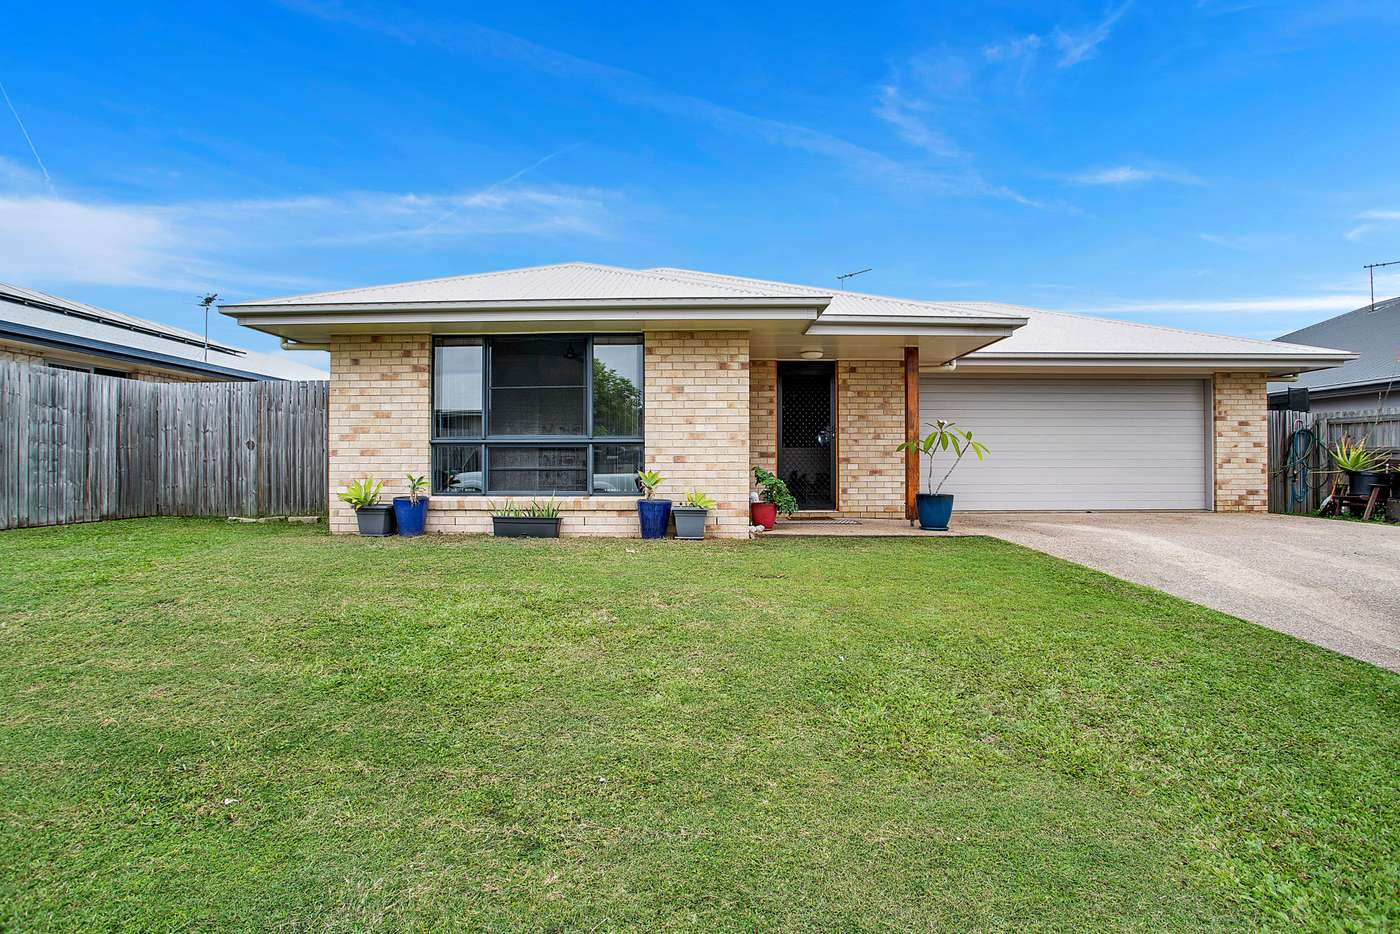 Main view of Homely house listing, 15 Parklane Crescent, Beaconsfield QLD 4740